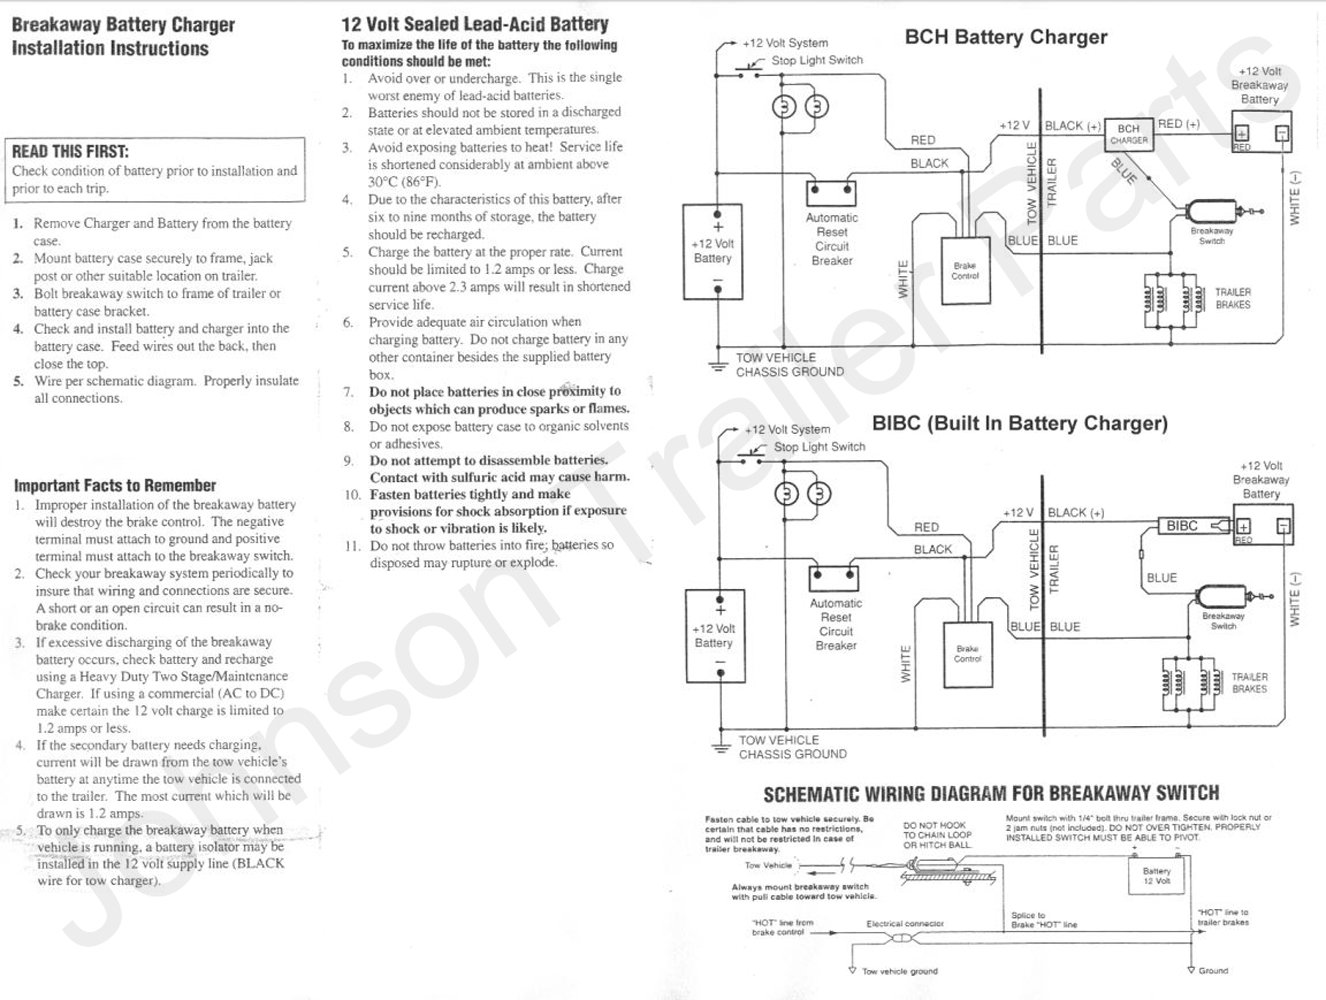 Trailer Breakaway Kit - LED Readout - Breakaway Switch - Battery - on trailer battery system, battery isolator installation diagram, esco breakaway box diagram, trailer breakaway wiring-diagram, motorhome battery diagram, trailer building diagrams, standard 7 wire trailer diagram, breakaway kit diagram, trailer battery switch, trailer battery frame, travel trailer electrical diagram, camper battery hook up diagram, trailer battery charging diagram, rv battery hook up diagram, trailer wiring schematic, trailer battery box, trailer harness diagram, trailer battery cover, powerline isolator diagram,